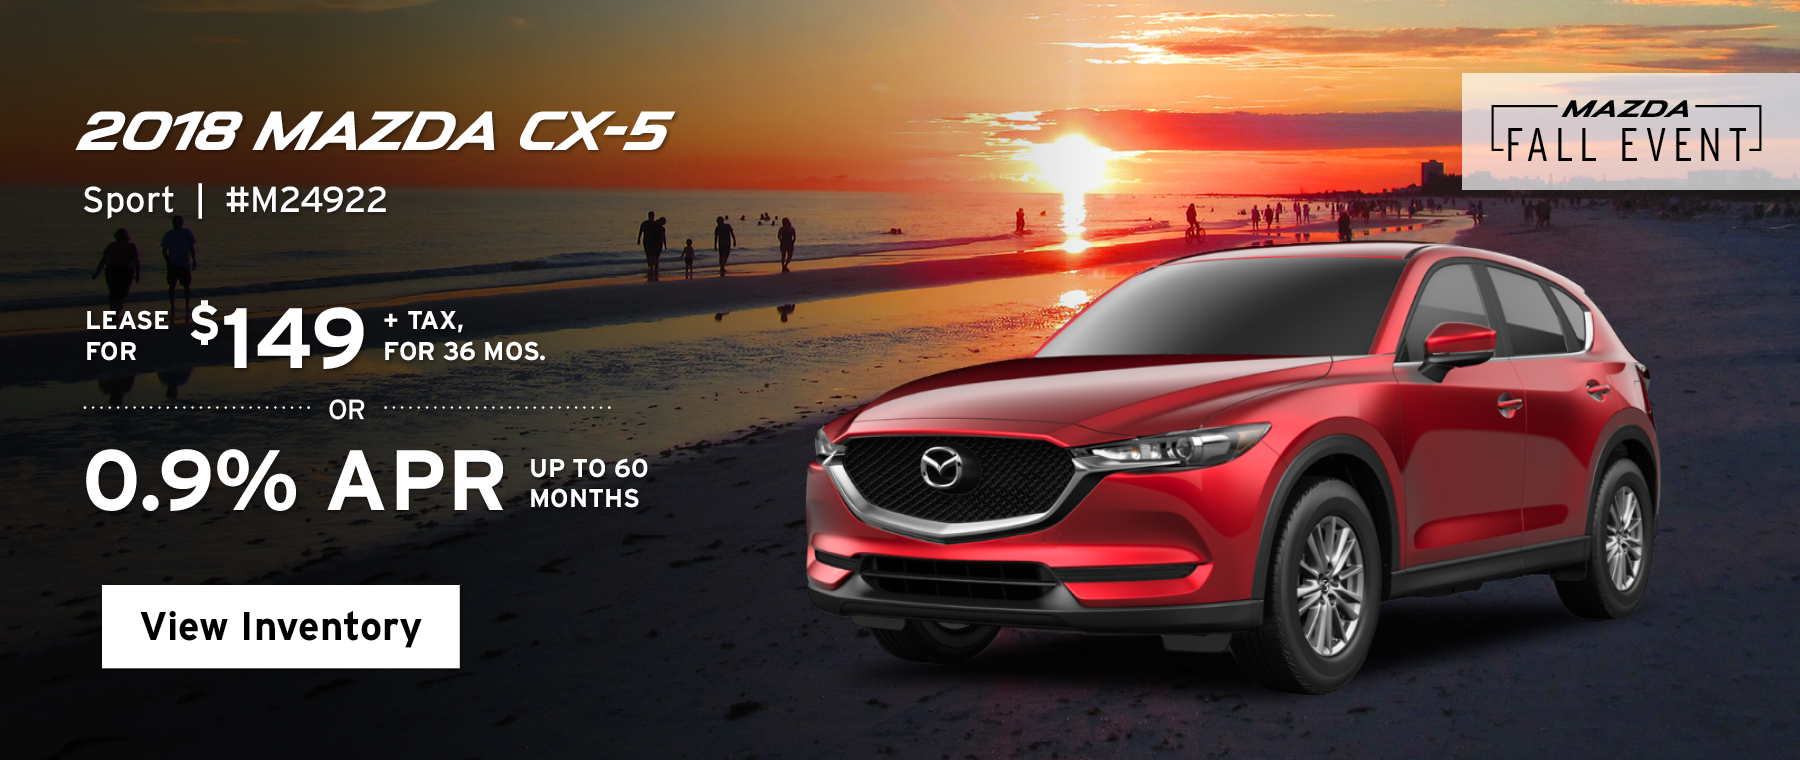 Lease the 2018 Mazda CX-5 Sport for $149, plus tax for 36 months, or 0.9% APR up to 60 months.